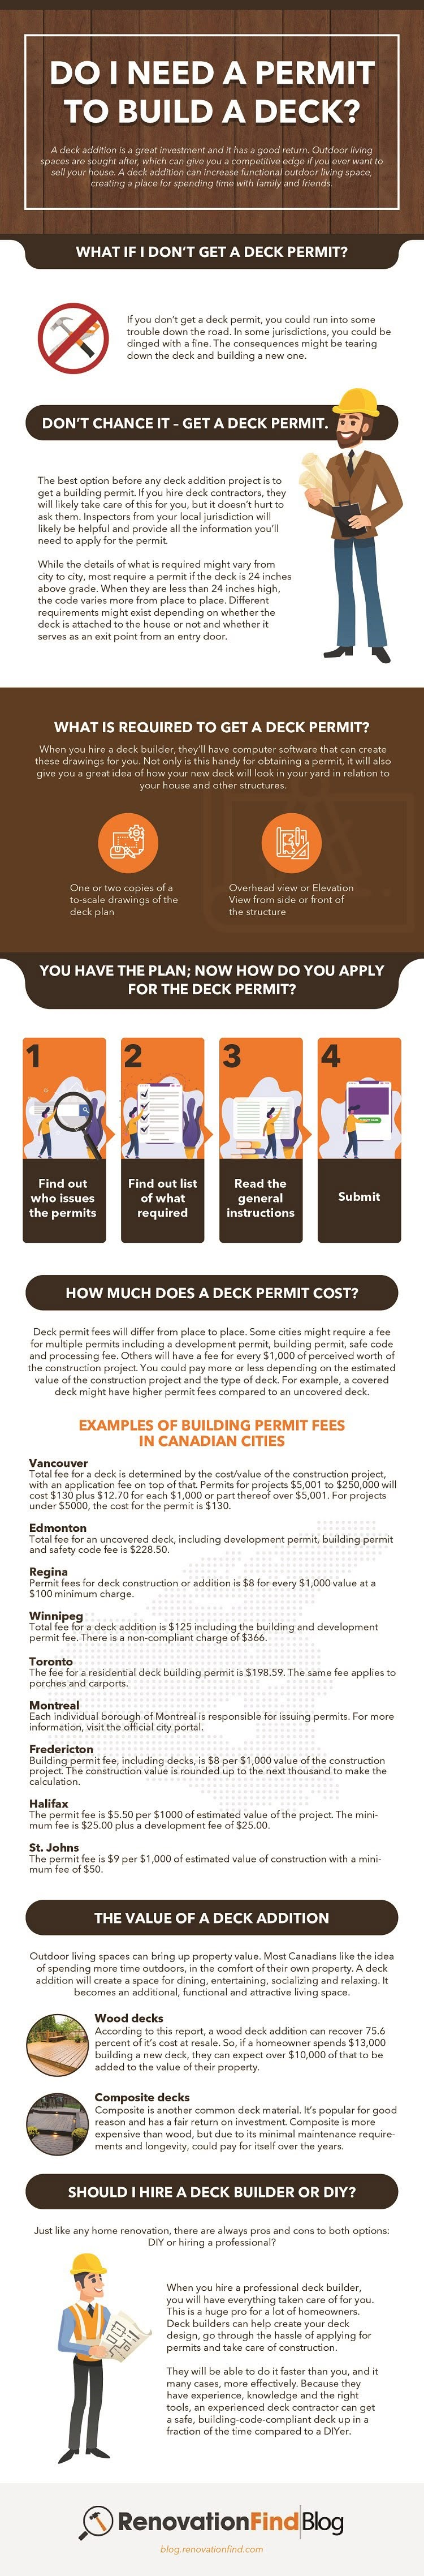 Do I Need a Permit To Build a Deck? #infographic